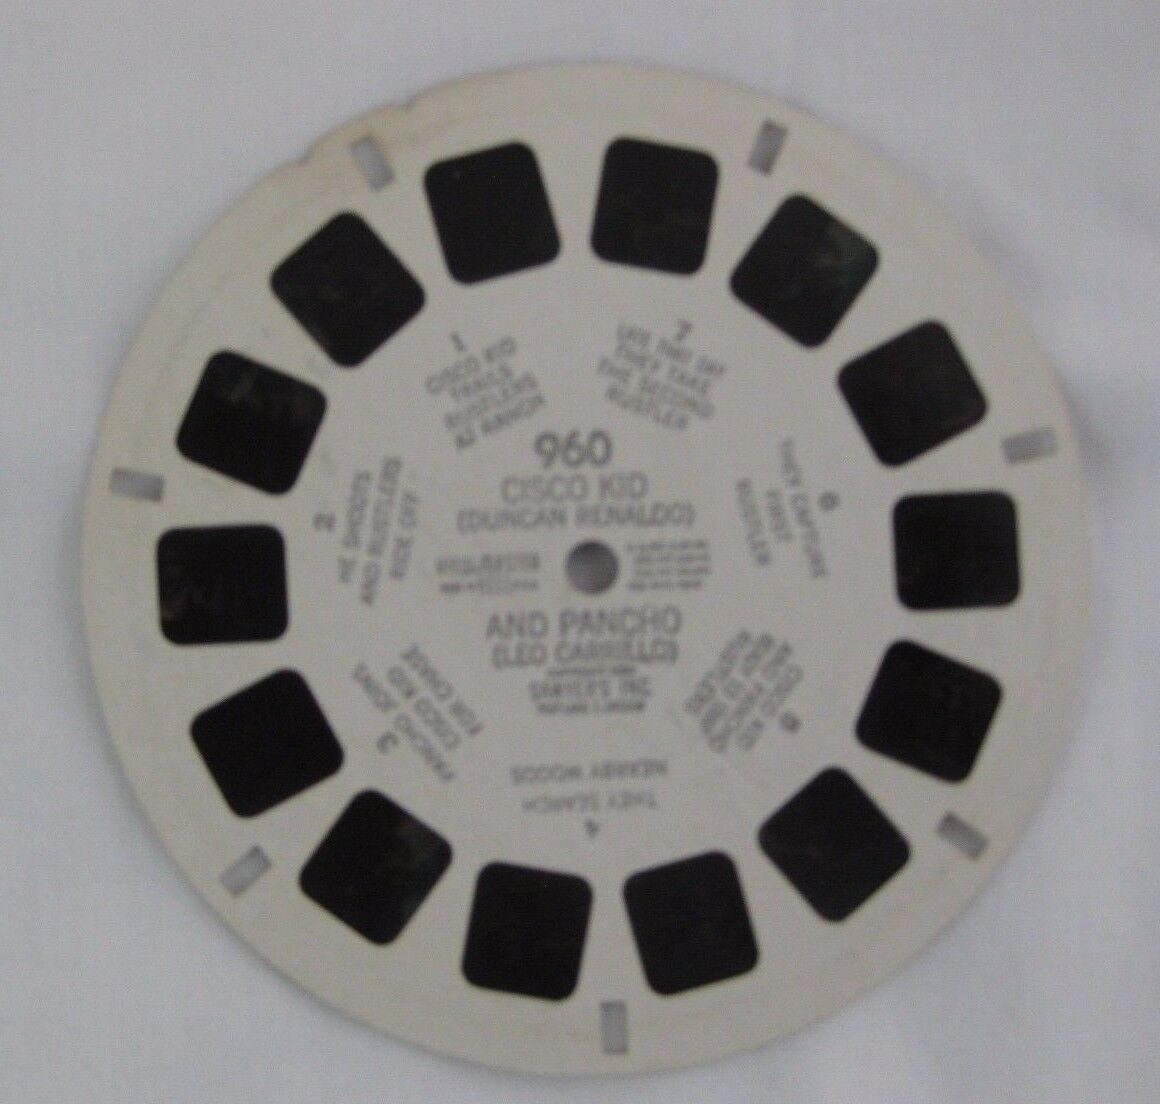 View Master Reel 960 Cisco Kid And Pancho 1 Of 1Only Available See More